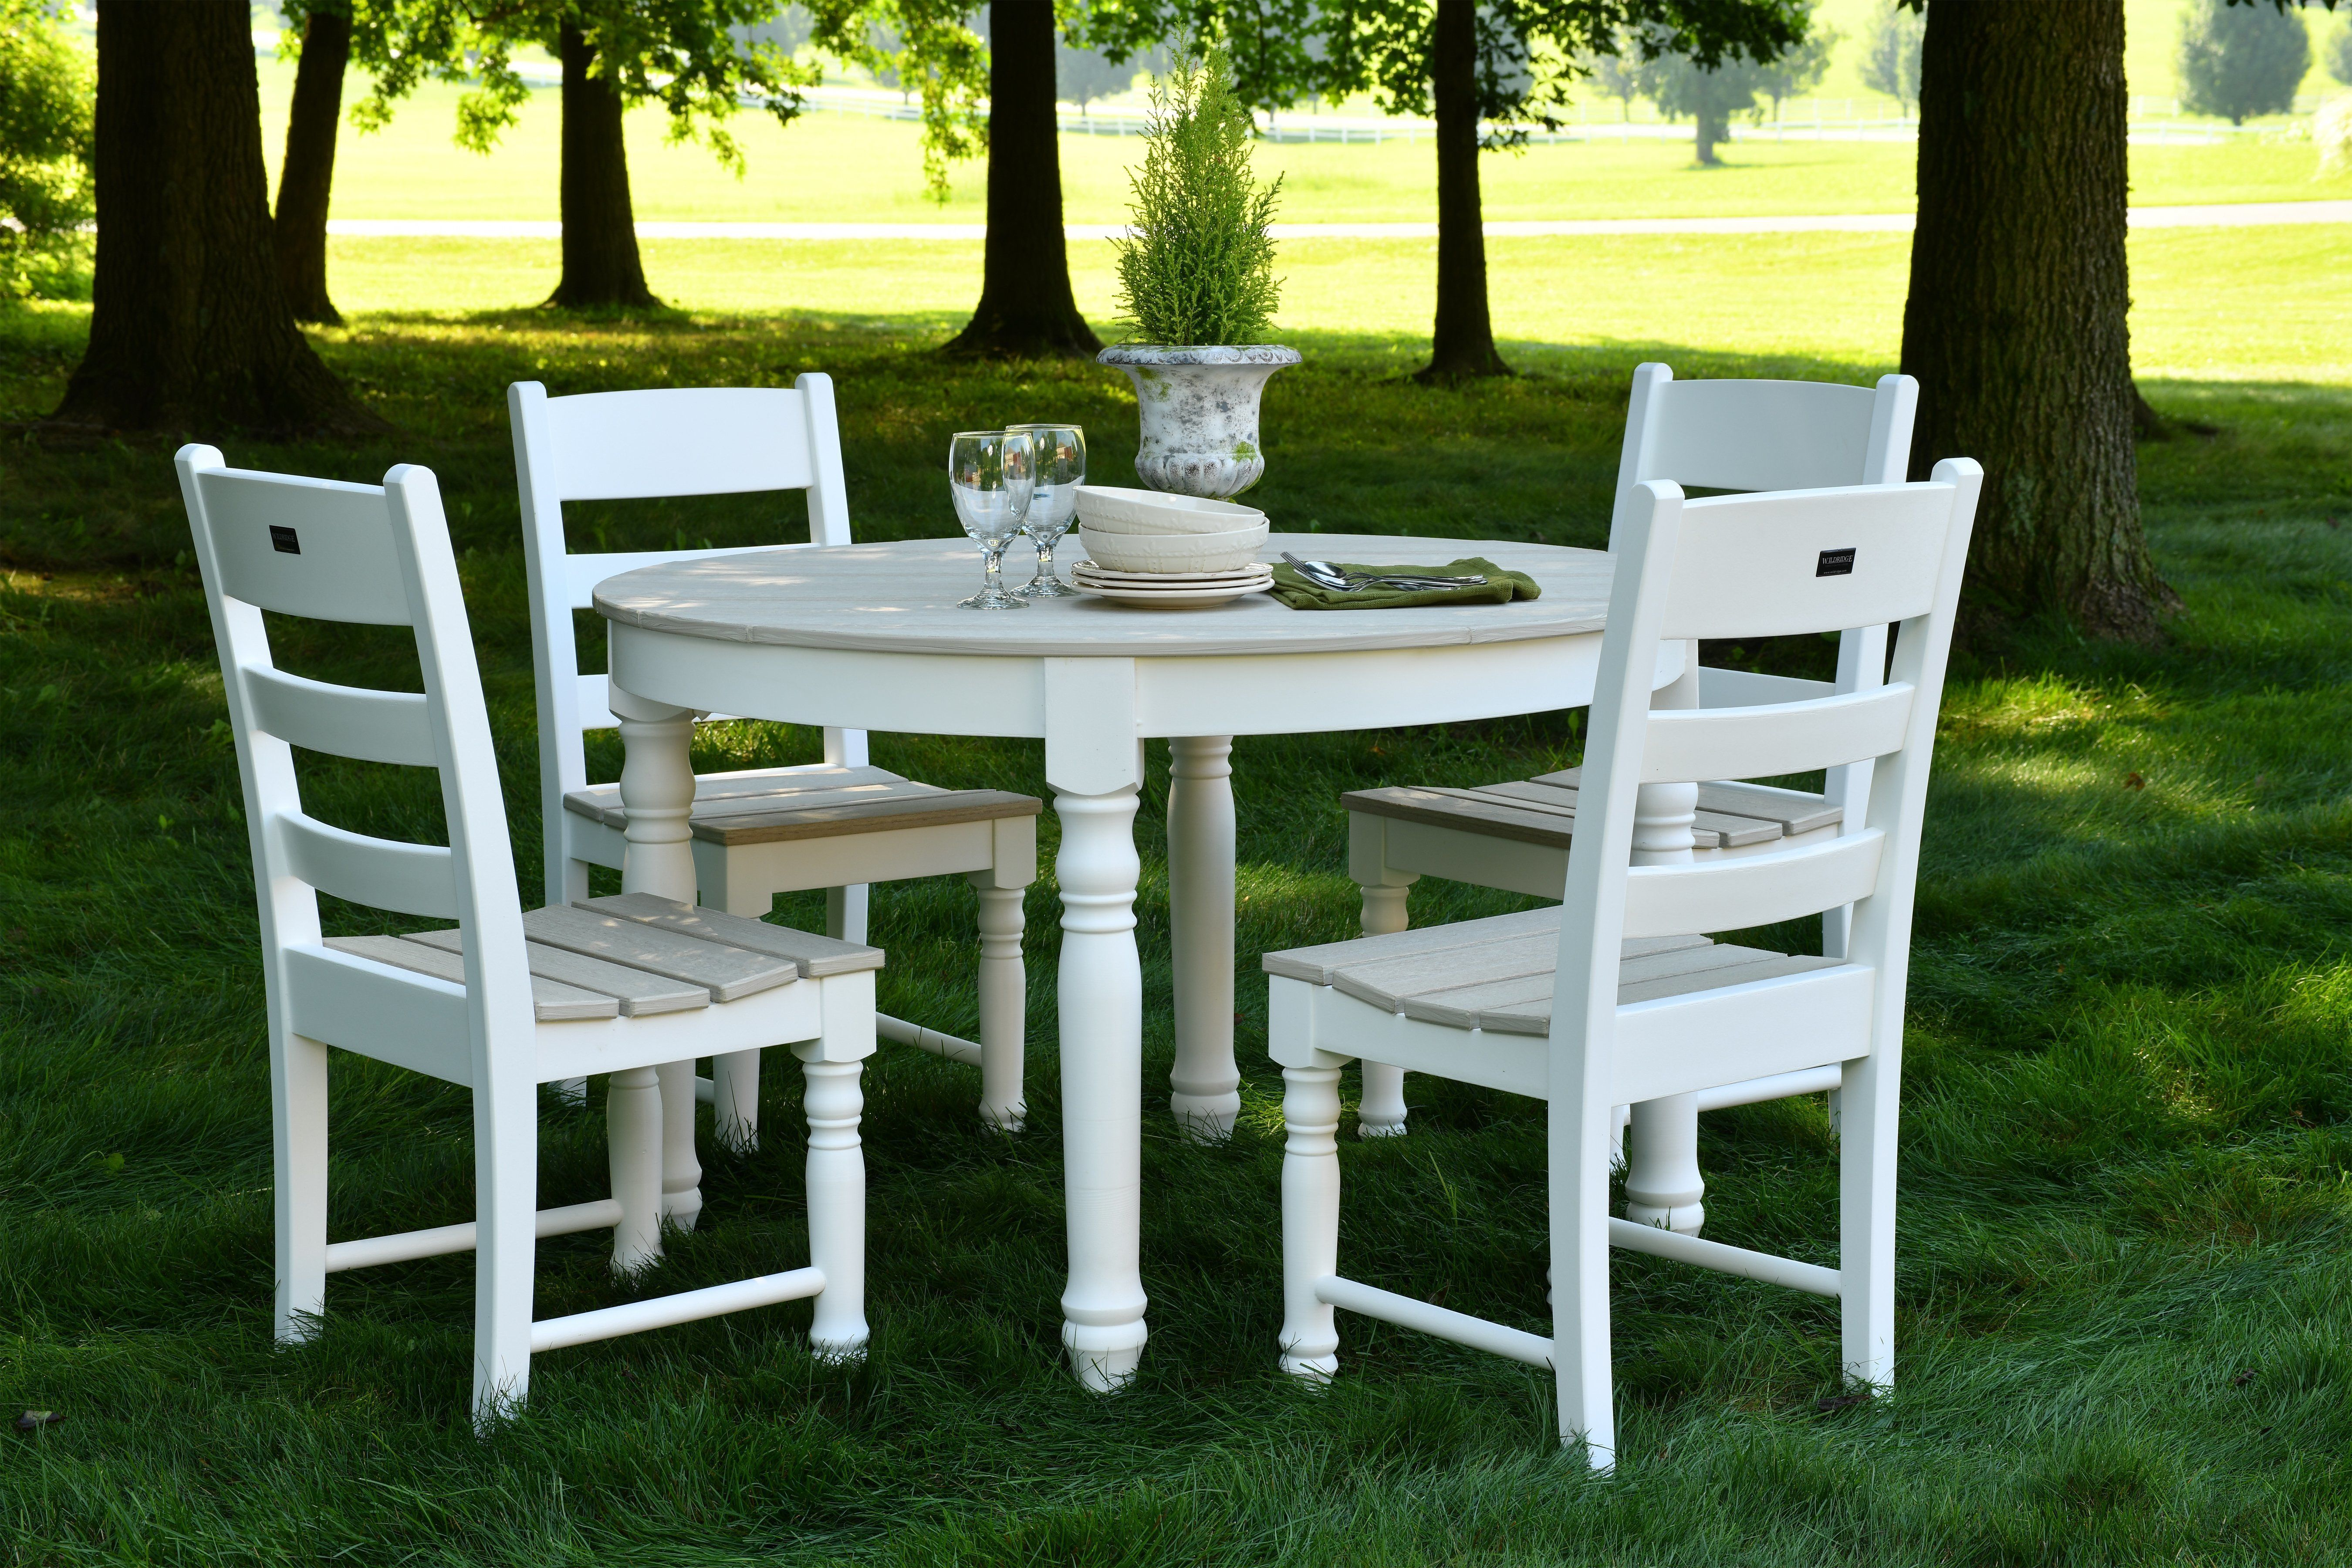 Eco poly farm house 48 round dining table with 4 dining